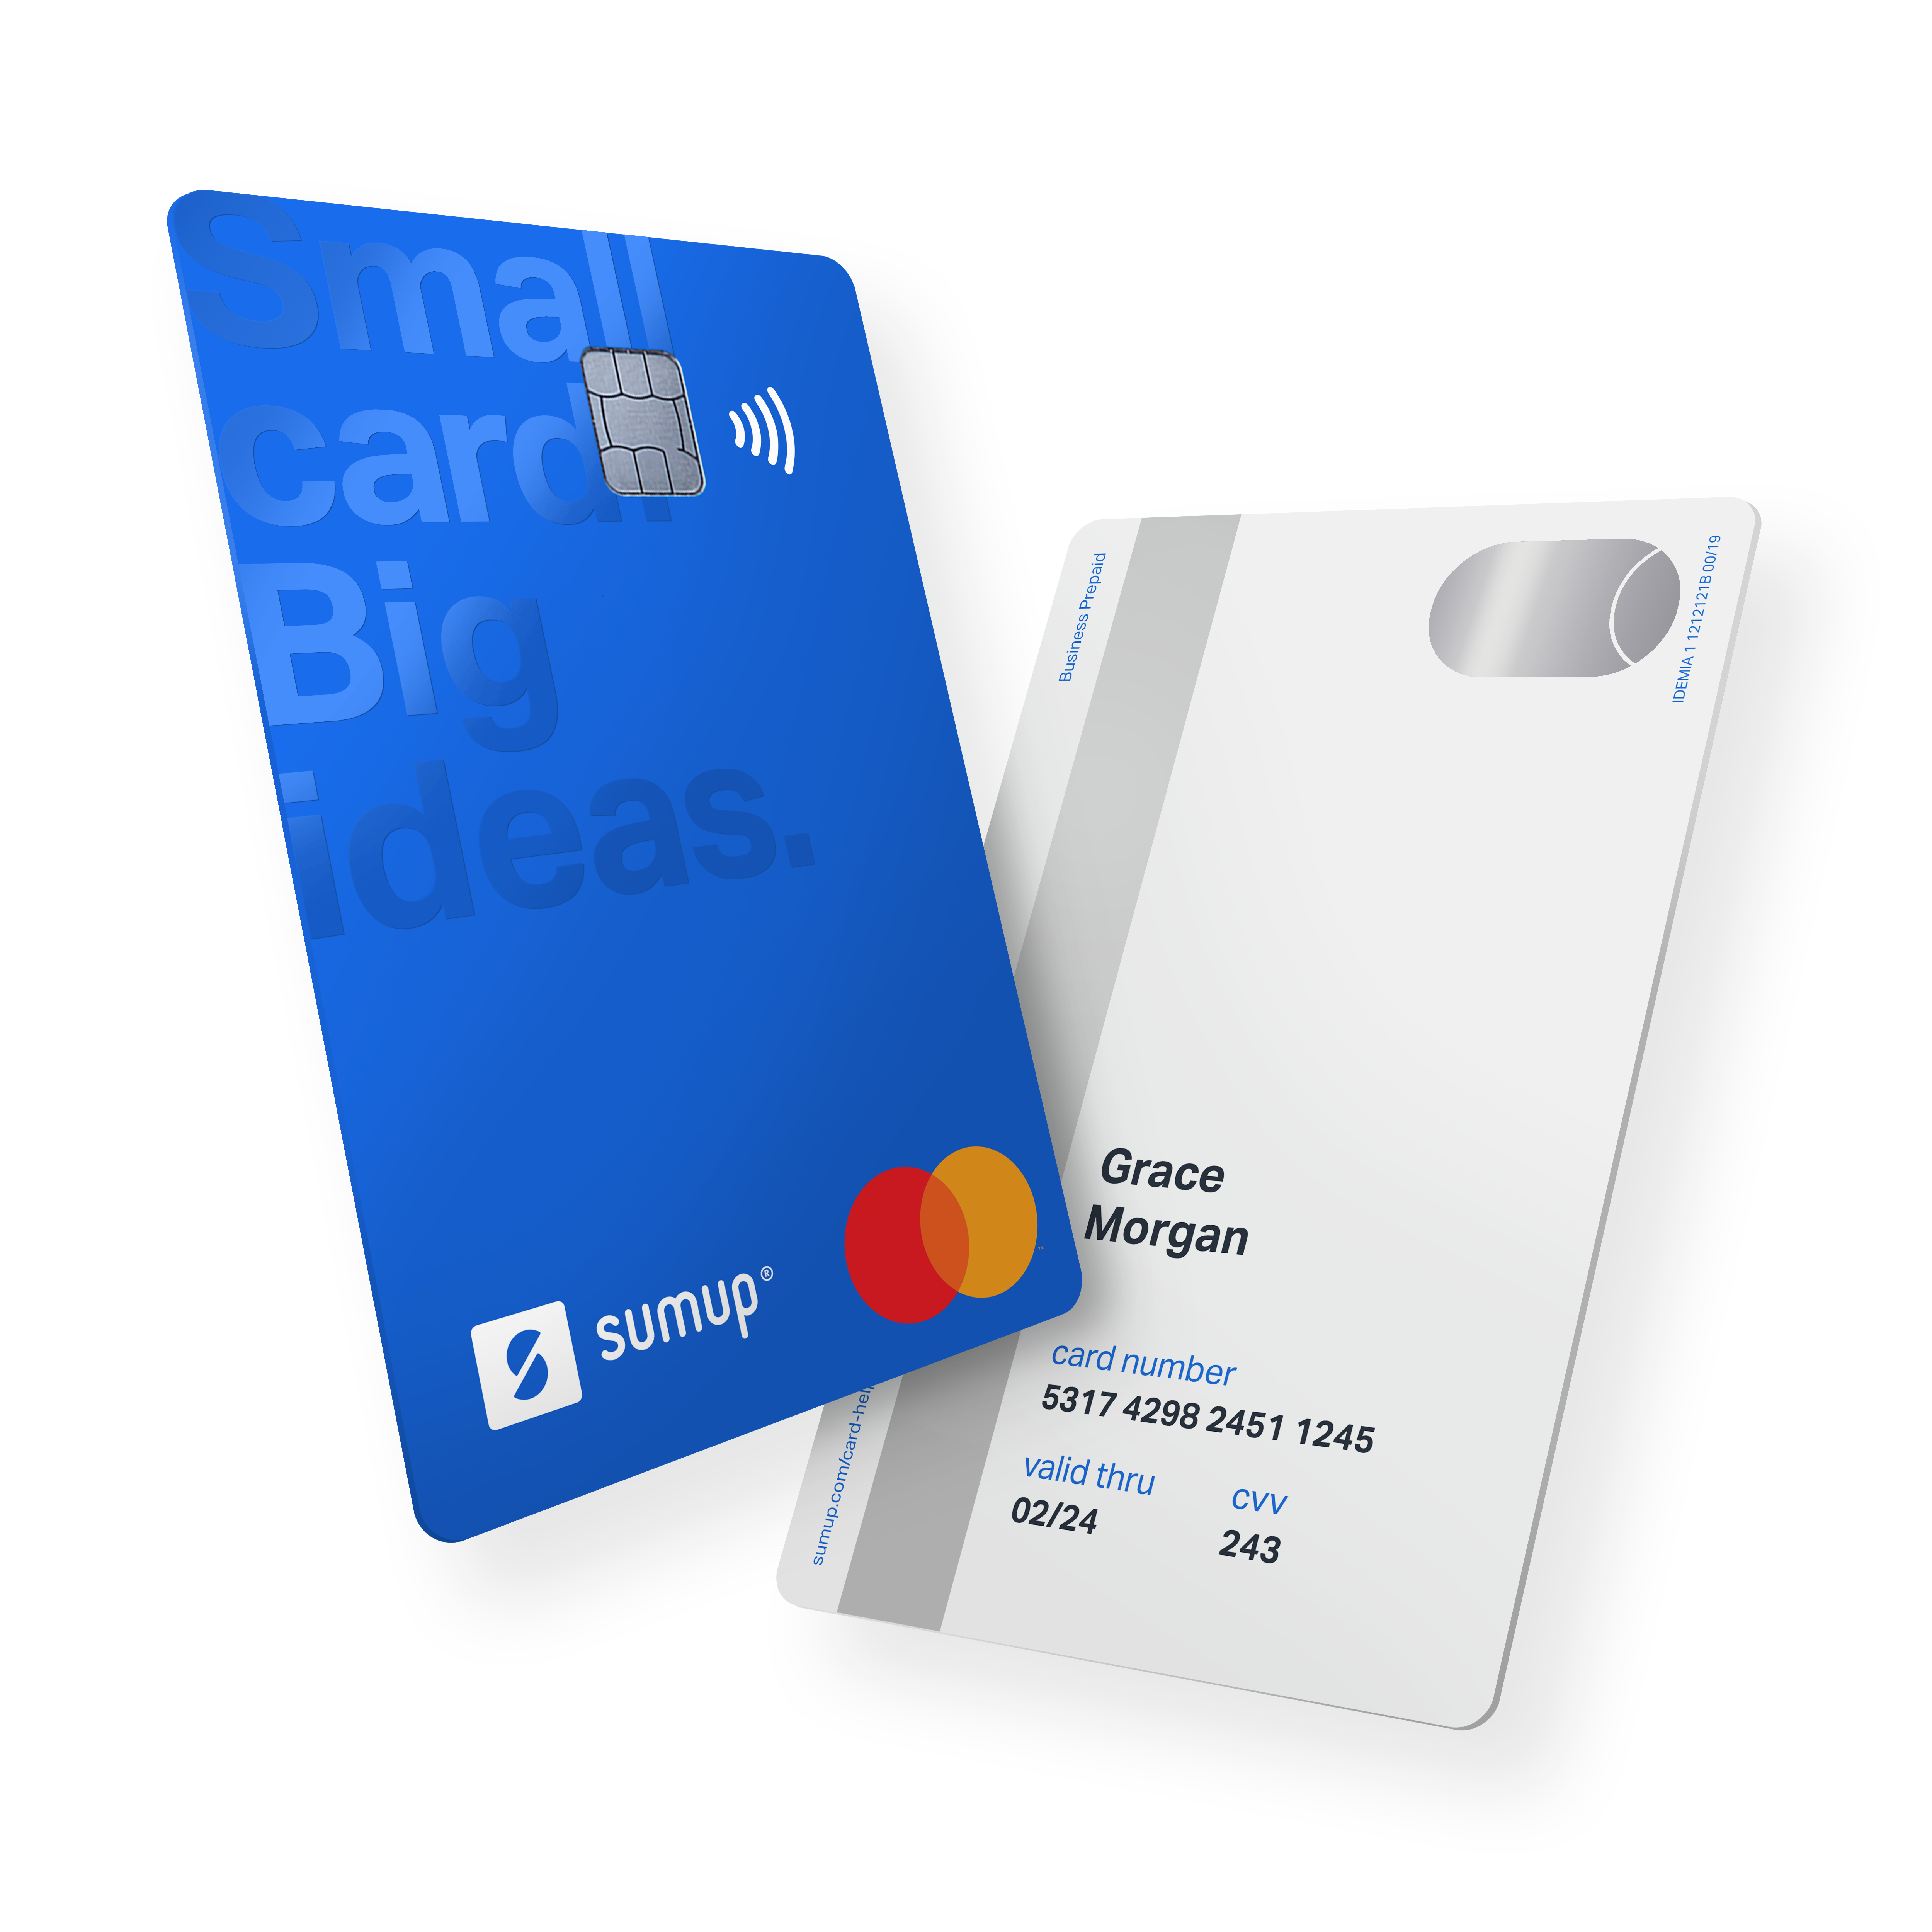 SumUp and Mastercard partner to launch card for business payments